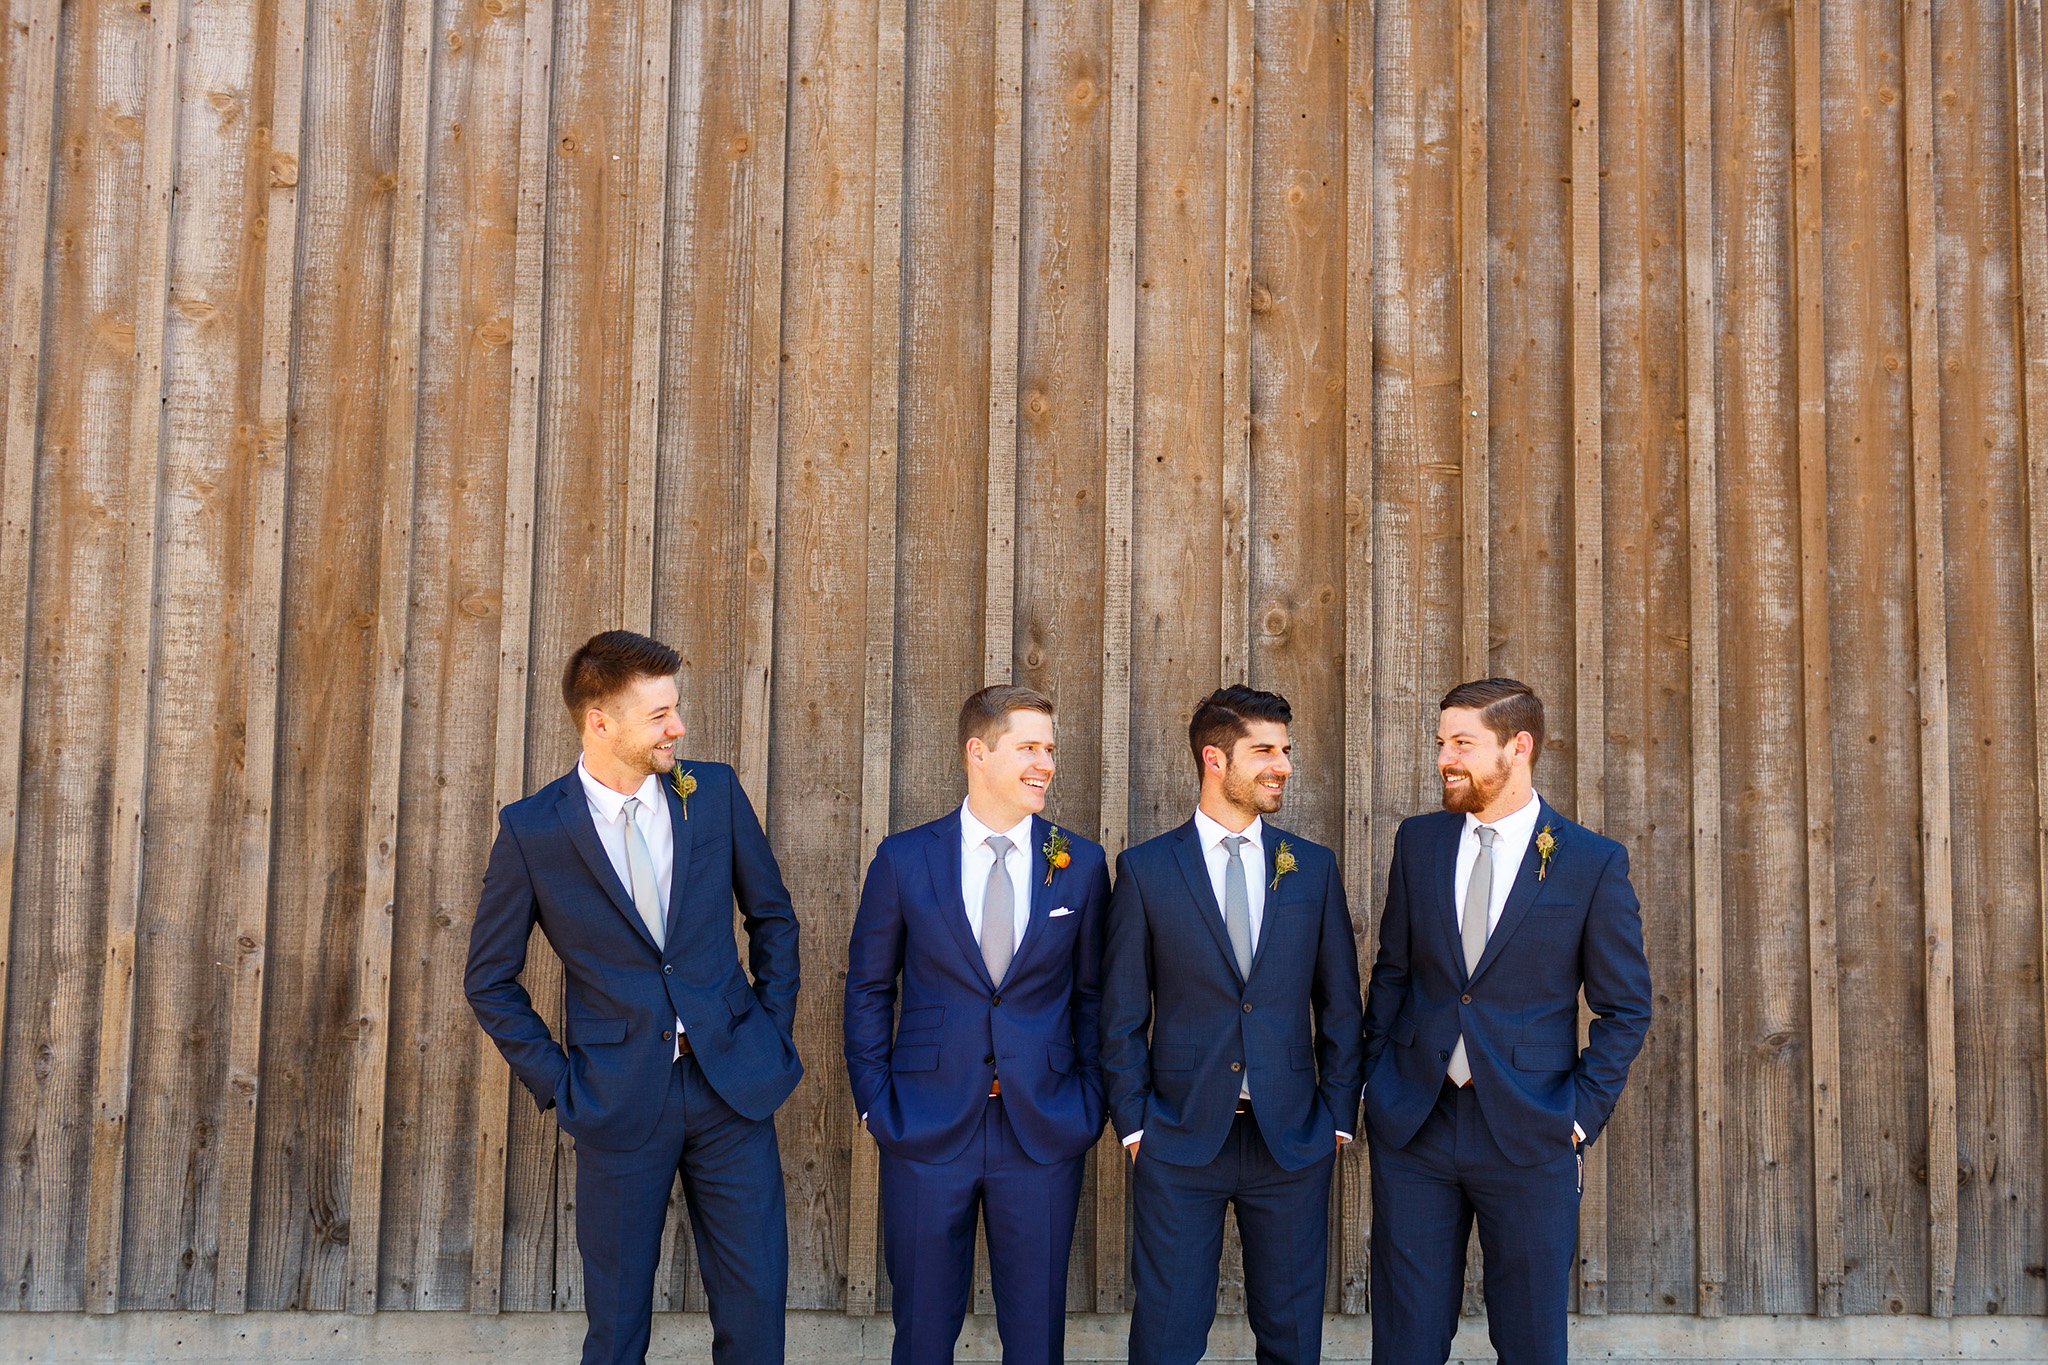 Groom and groomsmen at the barn at Thousand Hills Ranch in San Luis Obispo